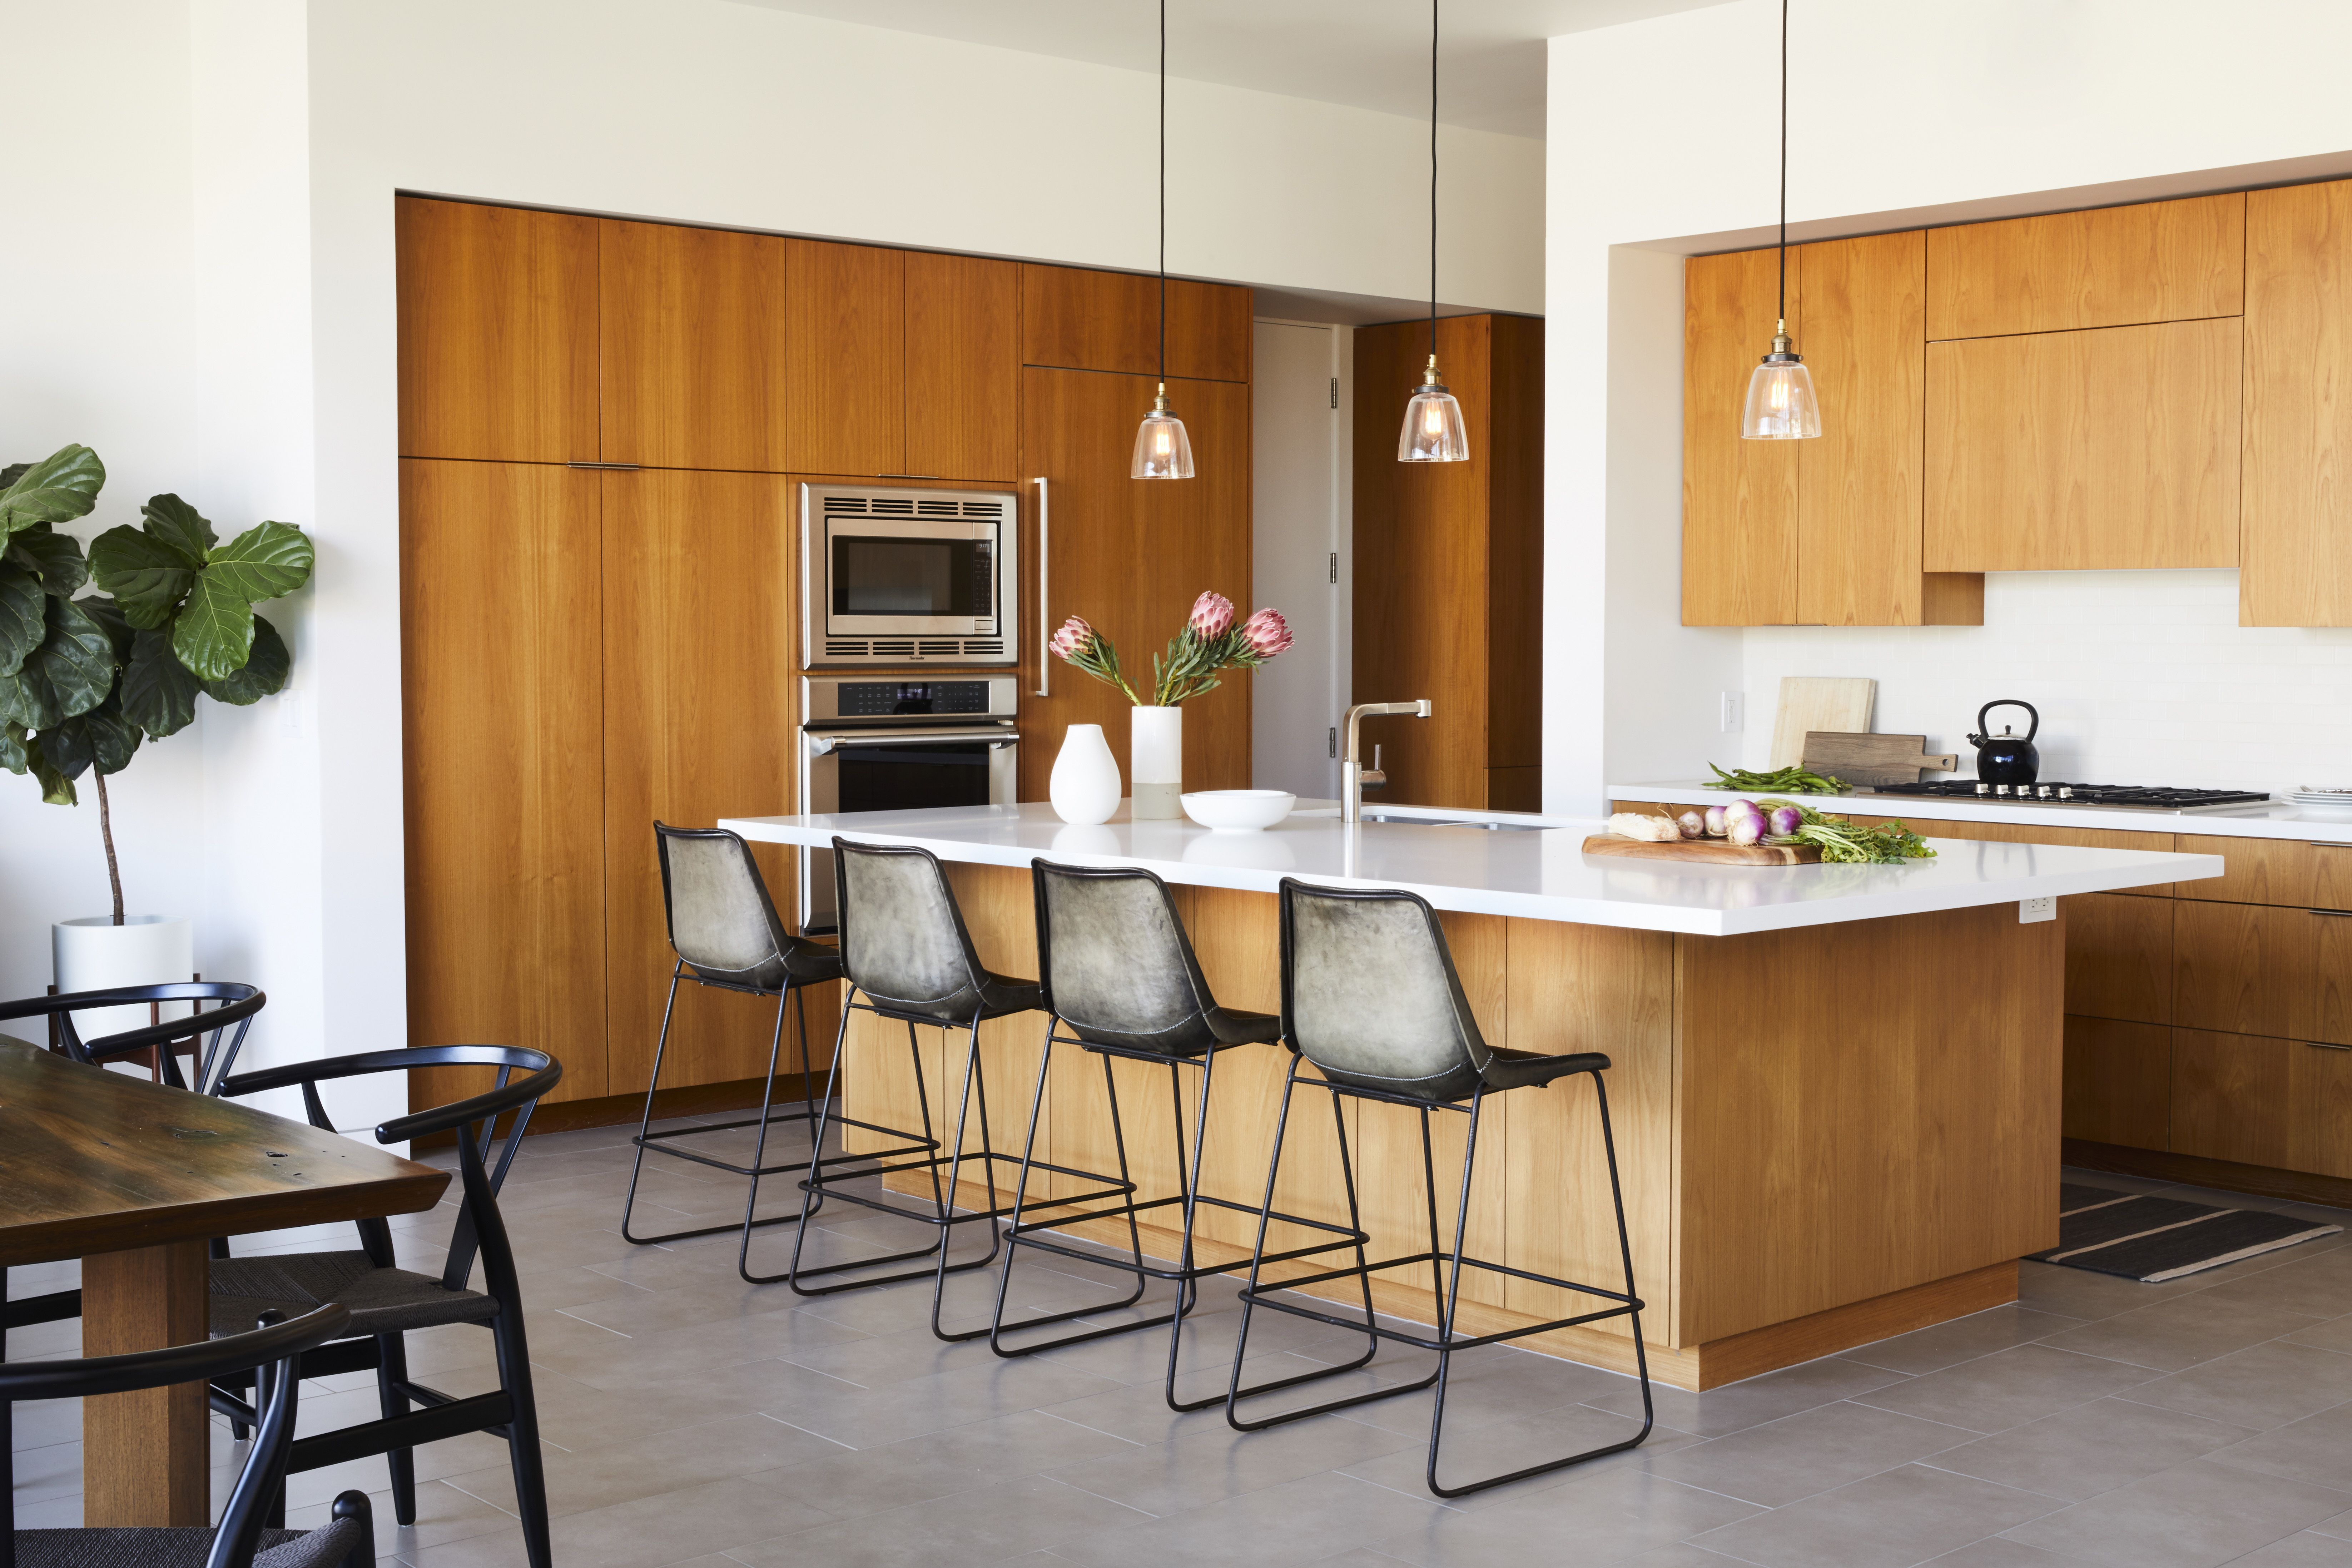 Ventura Keys Residence Modern Kitchen Design Modern Kitchen Cabinets Kitchen Cabinet Design